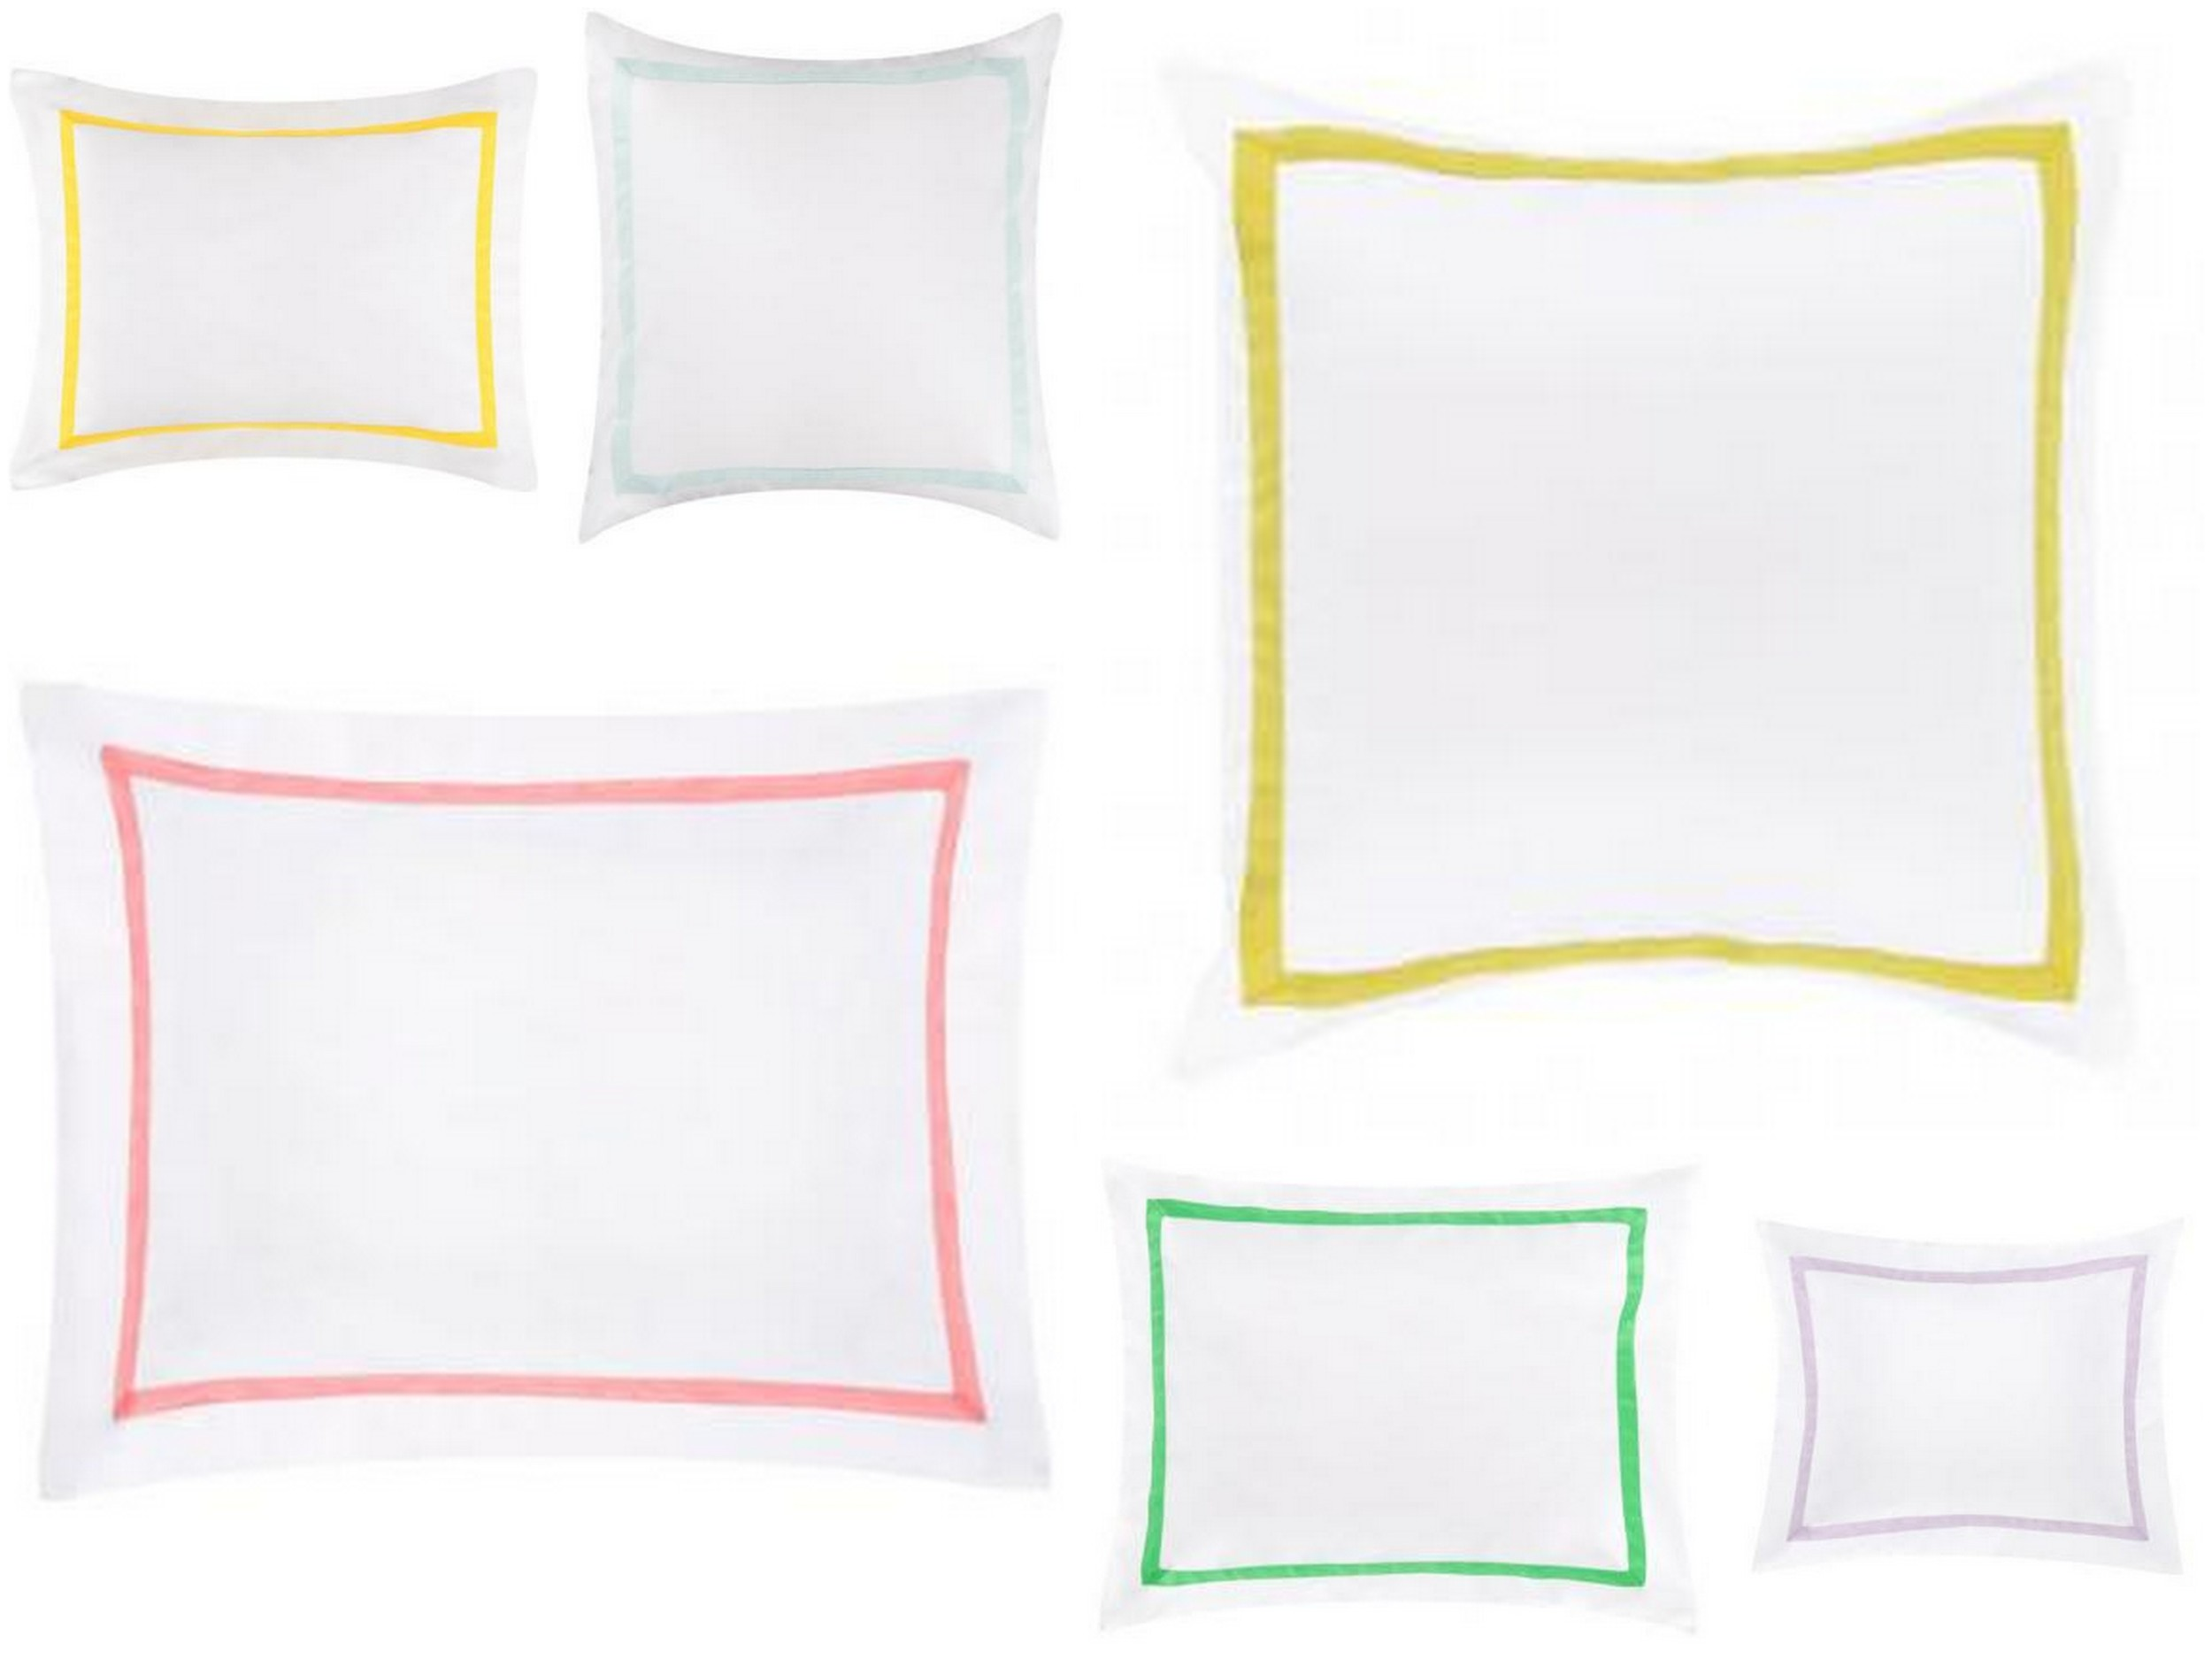 biscuit home border pillows.jpg